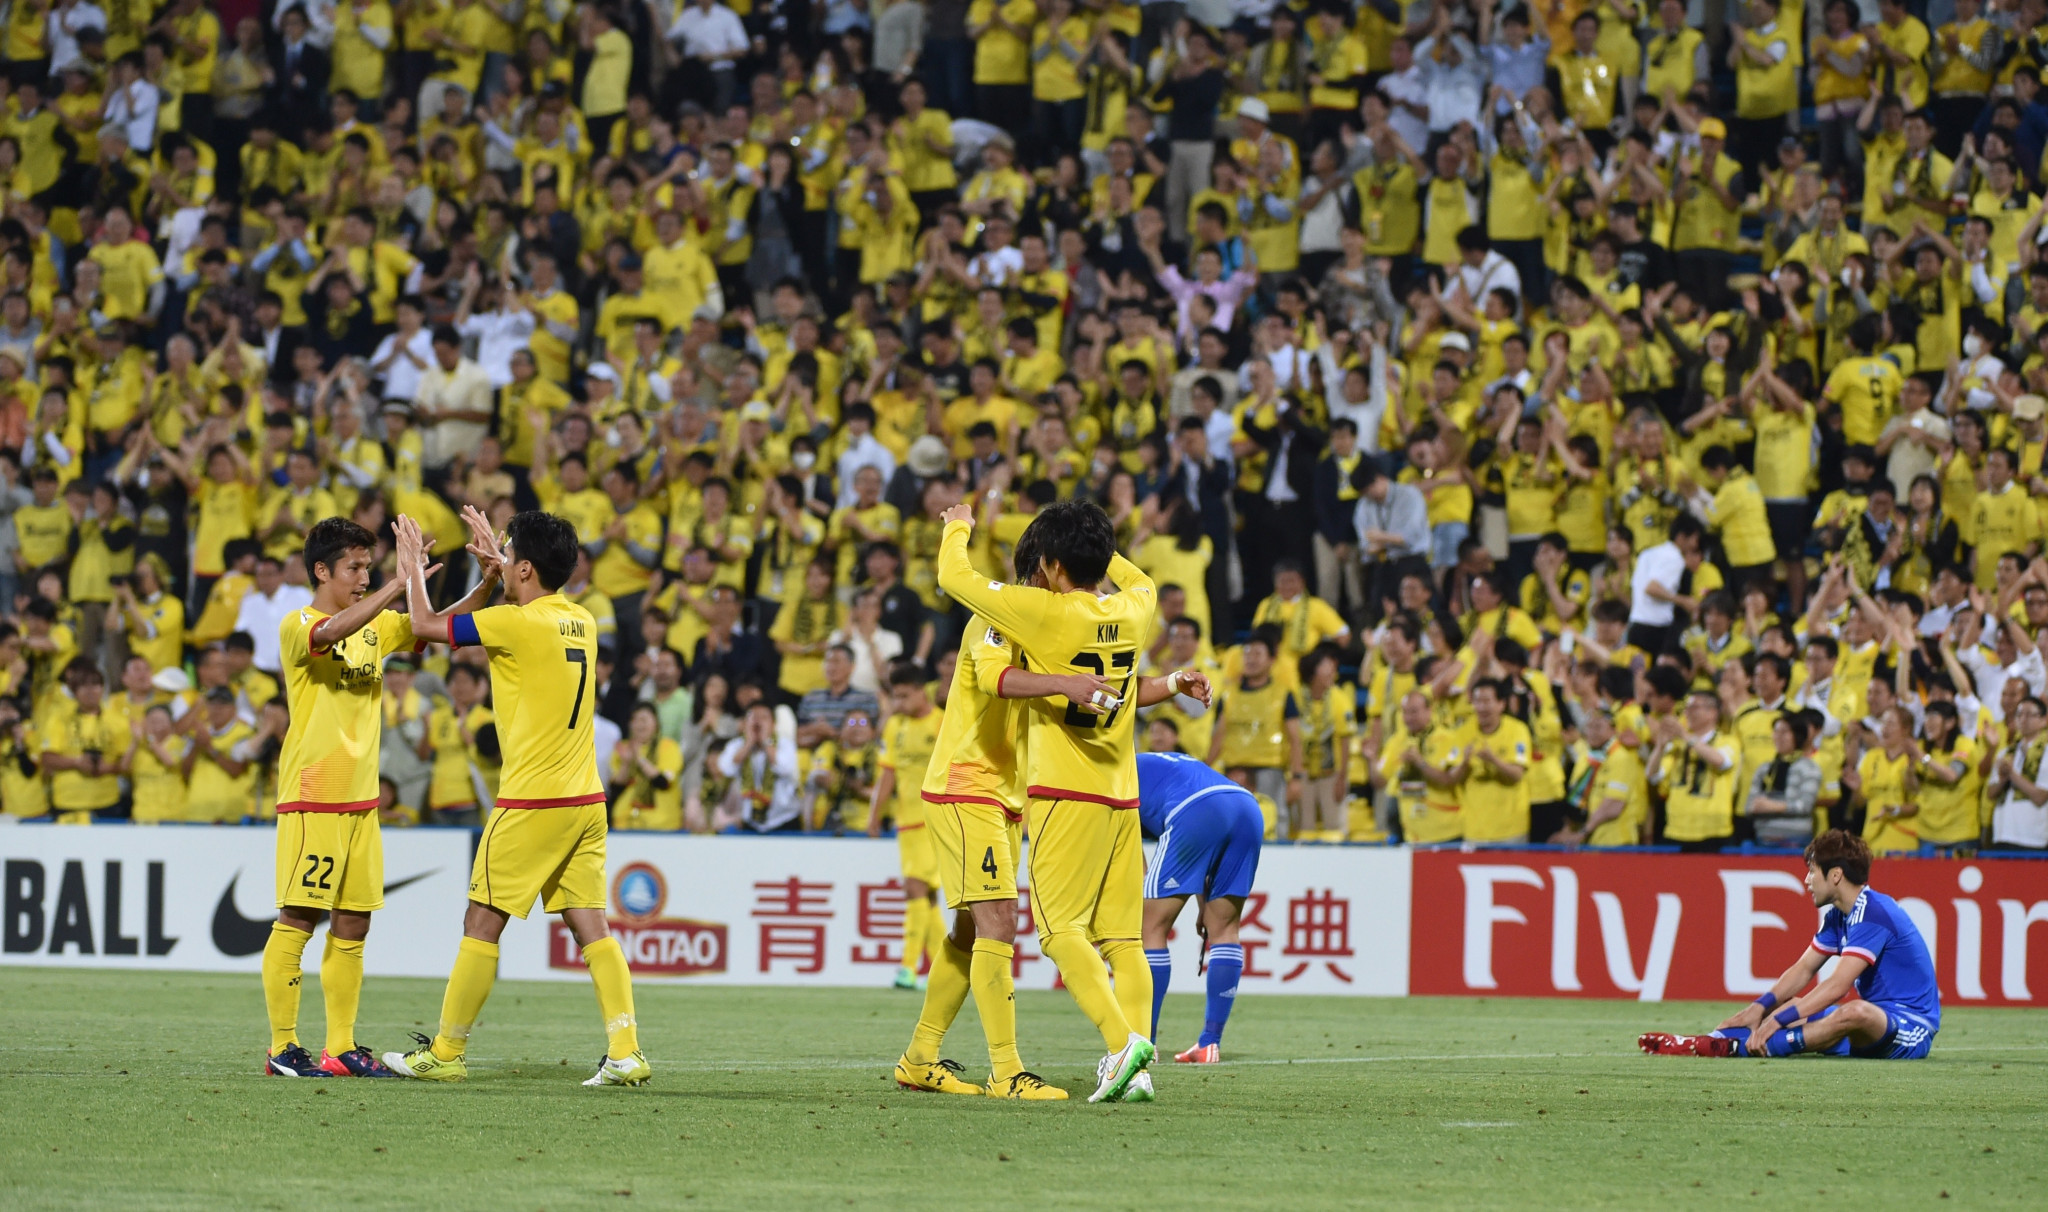 Kashiwa Reysol will face FC Tokyo in the J-League Cup Final in front of a bumper crowd ©Getty Images